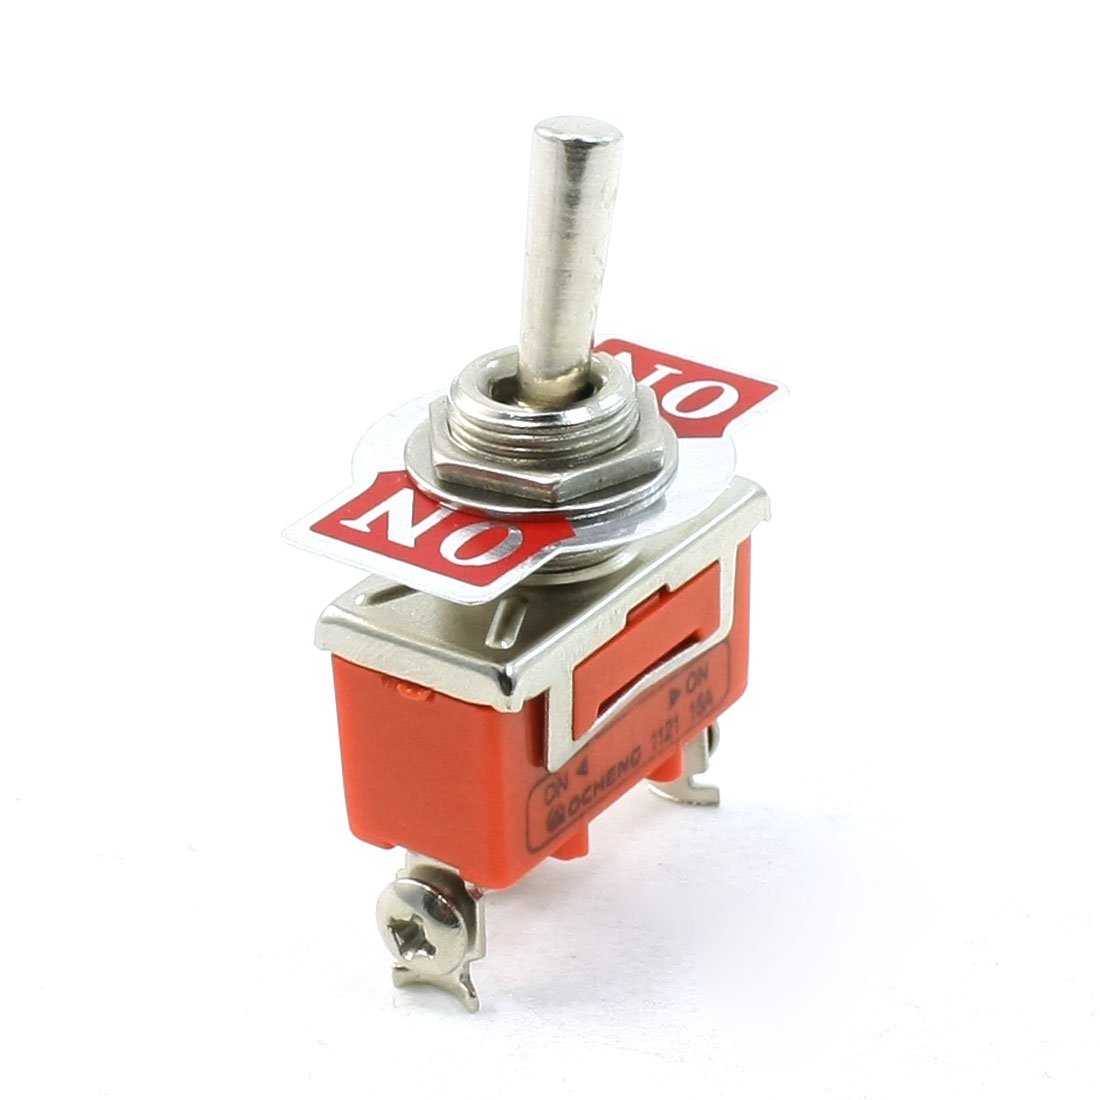 AC 250V 15A ON/ON SPDT 2 Positions 3 Terminals Toggle Switch